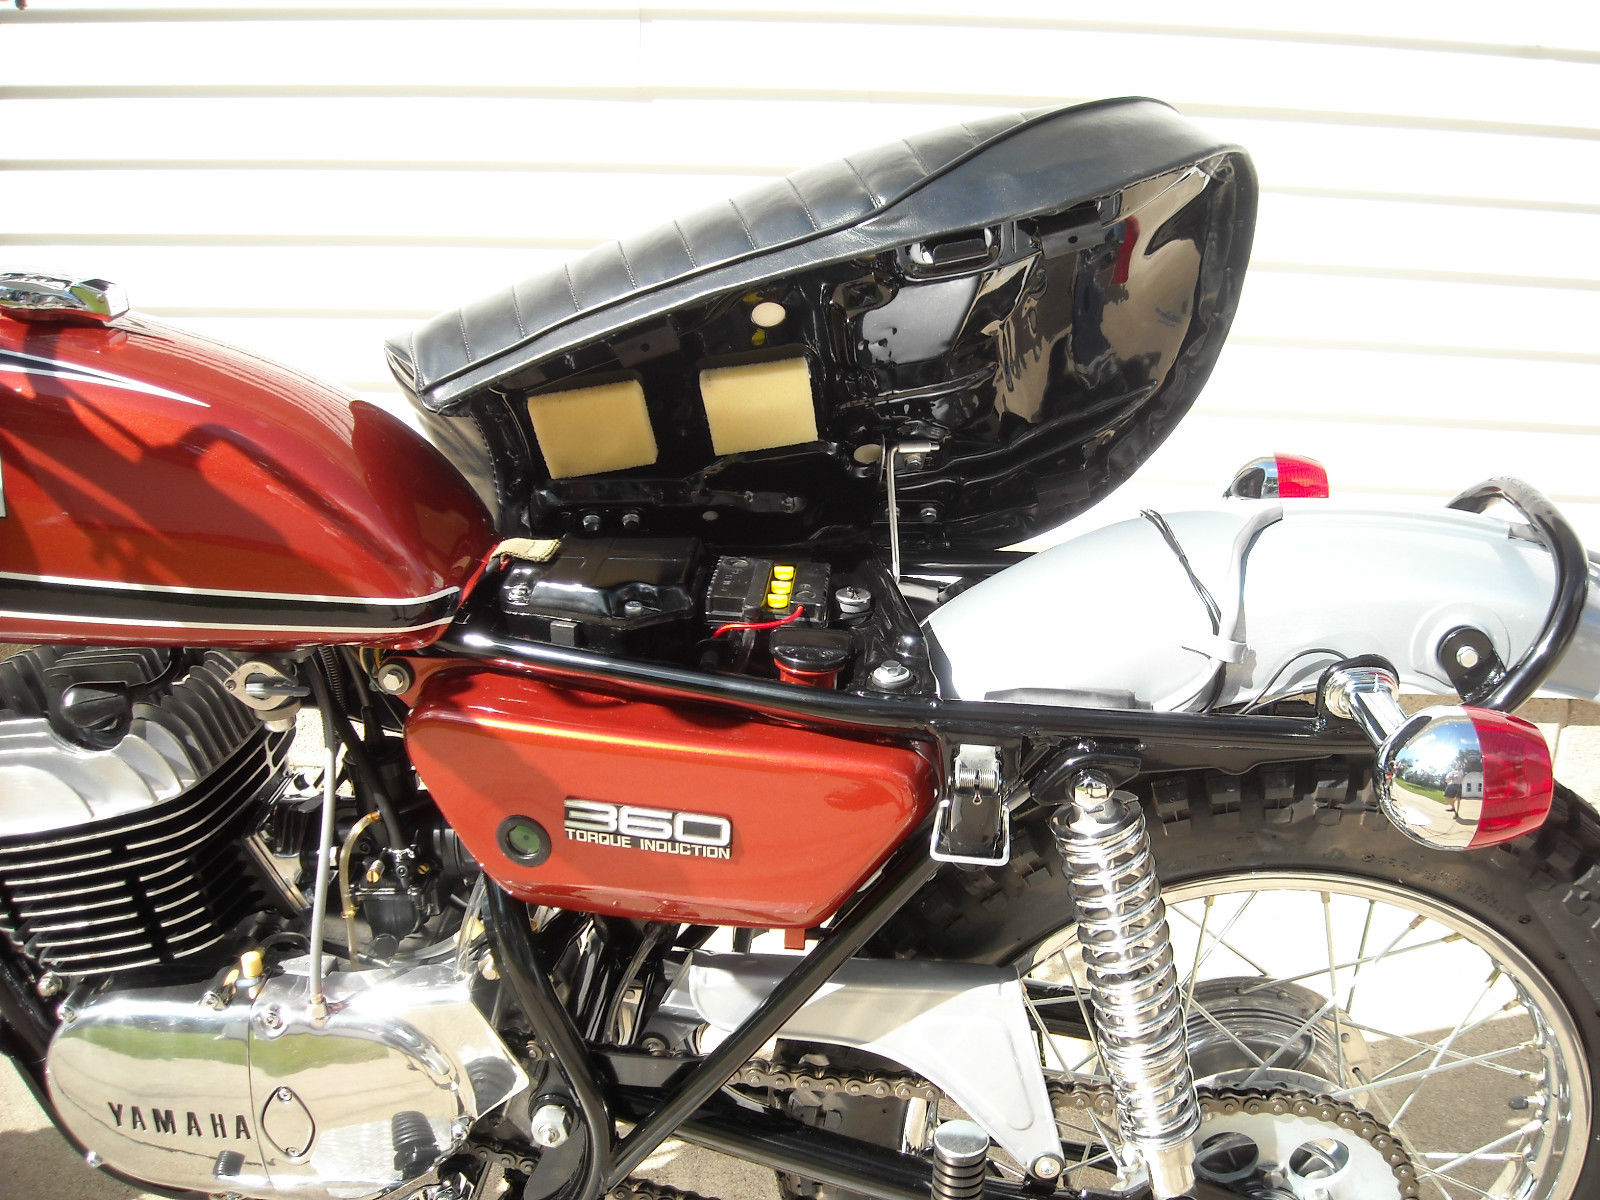 Yamaha 360 RT3 - 1973 - Seat, Frame, Side Panel and 360 Badge.